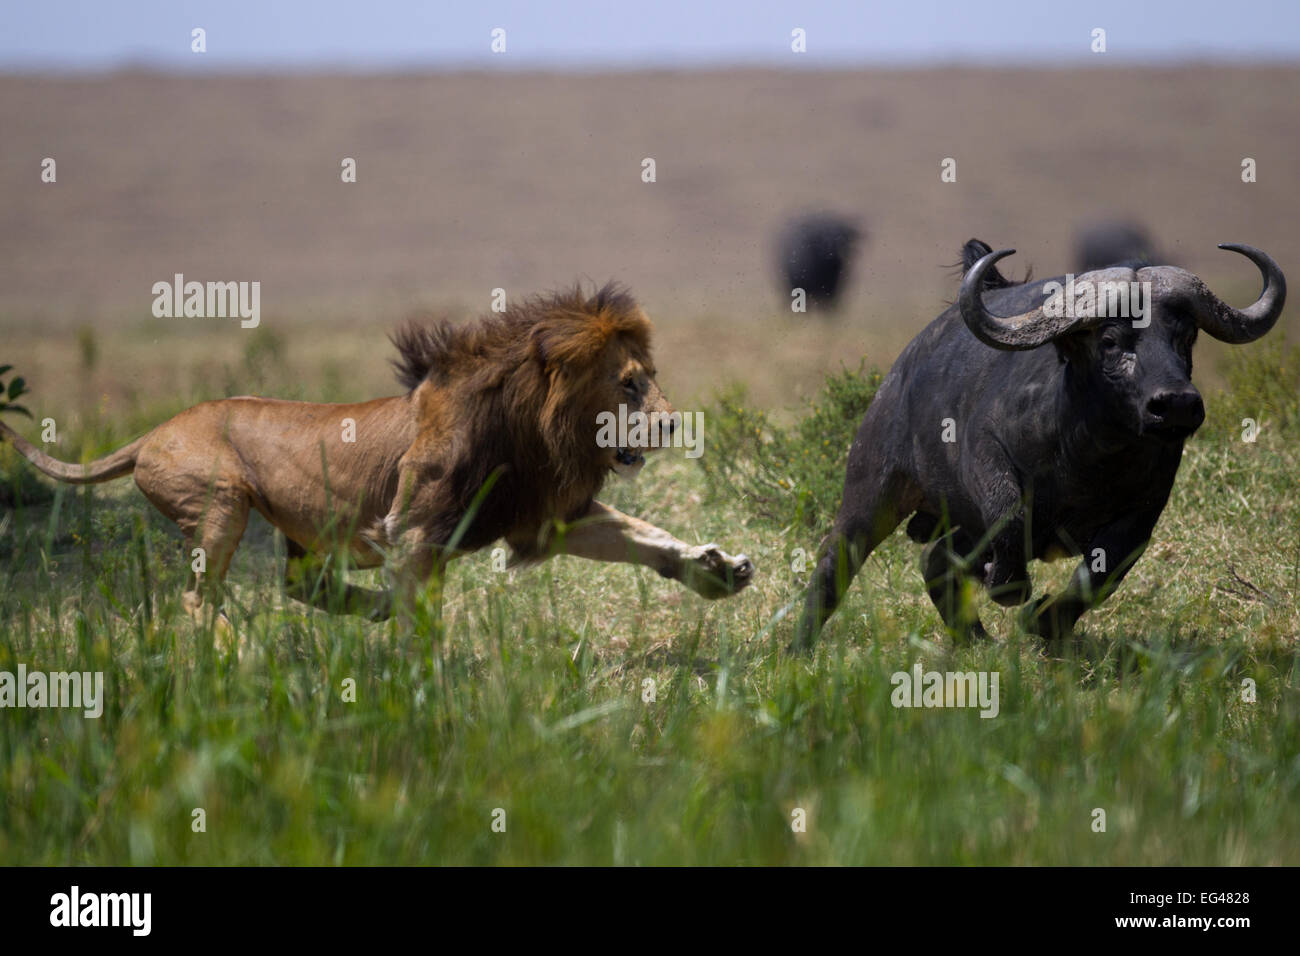 Male lion (Panthera leo) dans la confrontation buffle (Syncerus caffer). Le Masai Mara National Reserve Kenya Juillet Photo Stock